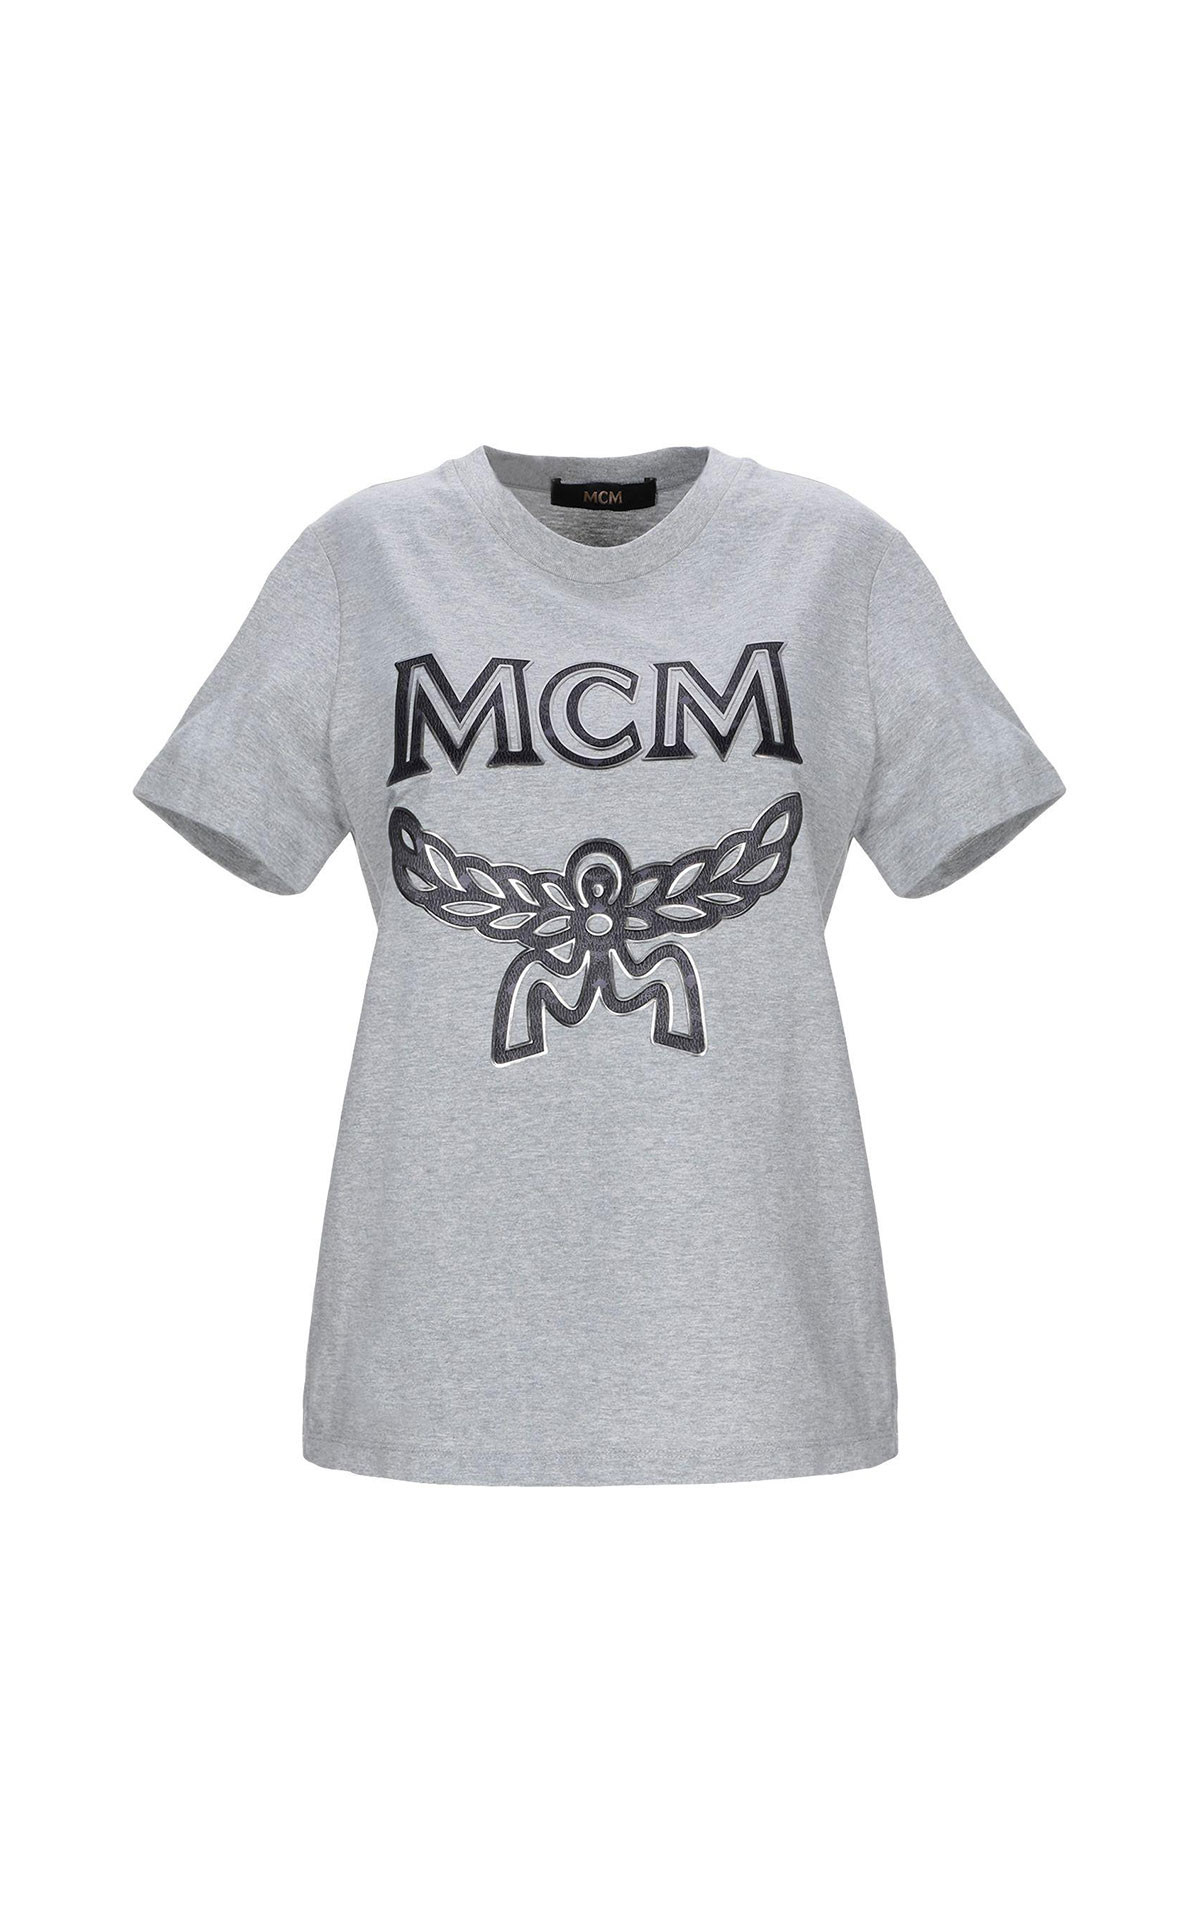 MCM MCM collection unisex t-shirt from Bicester Village